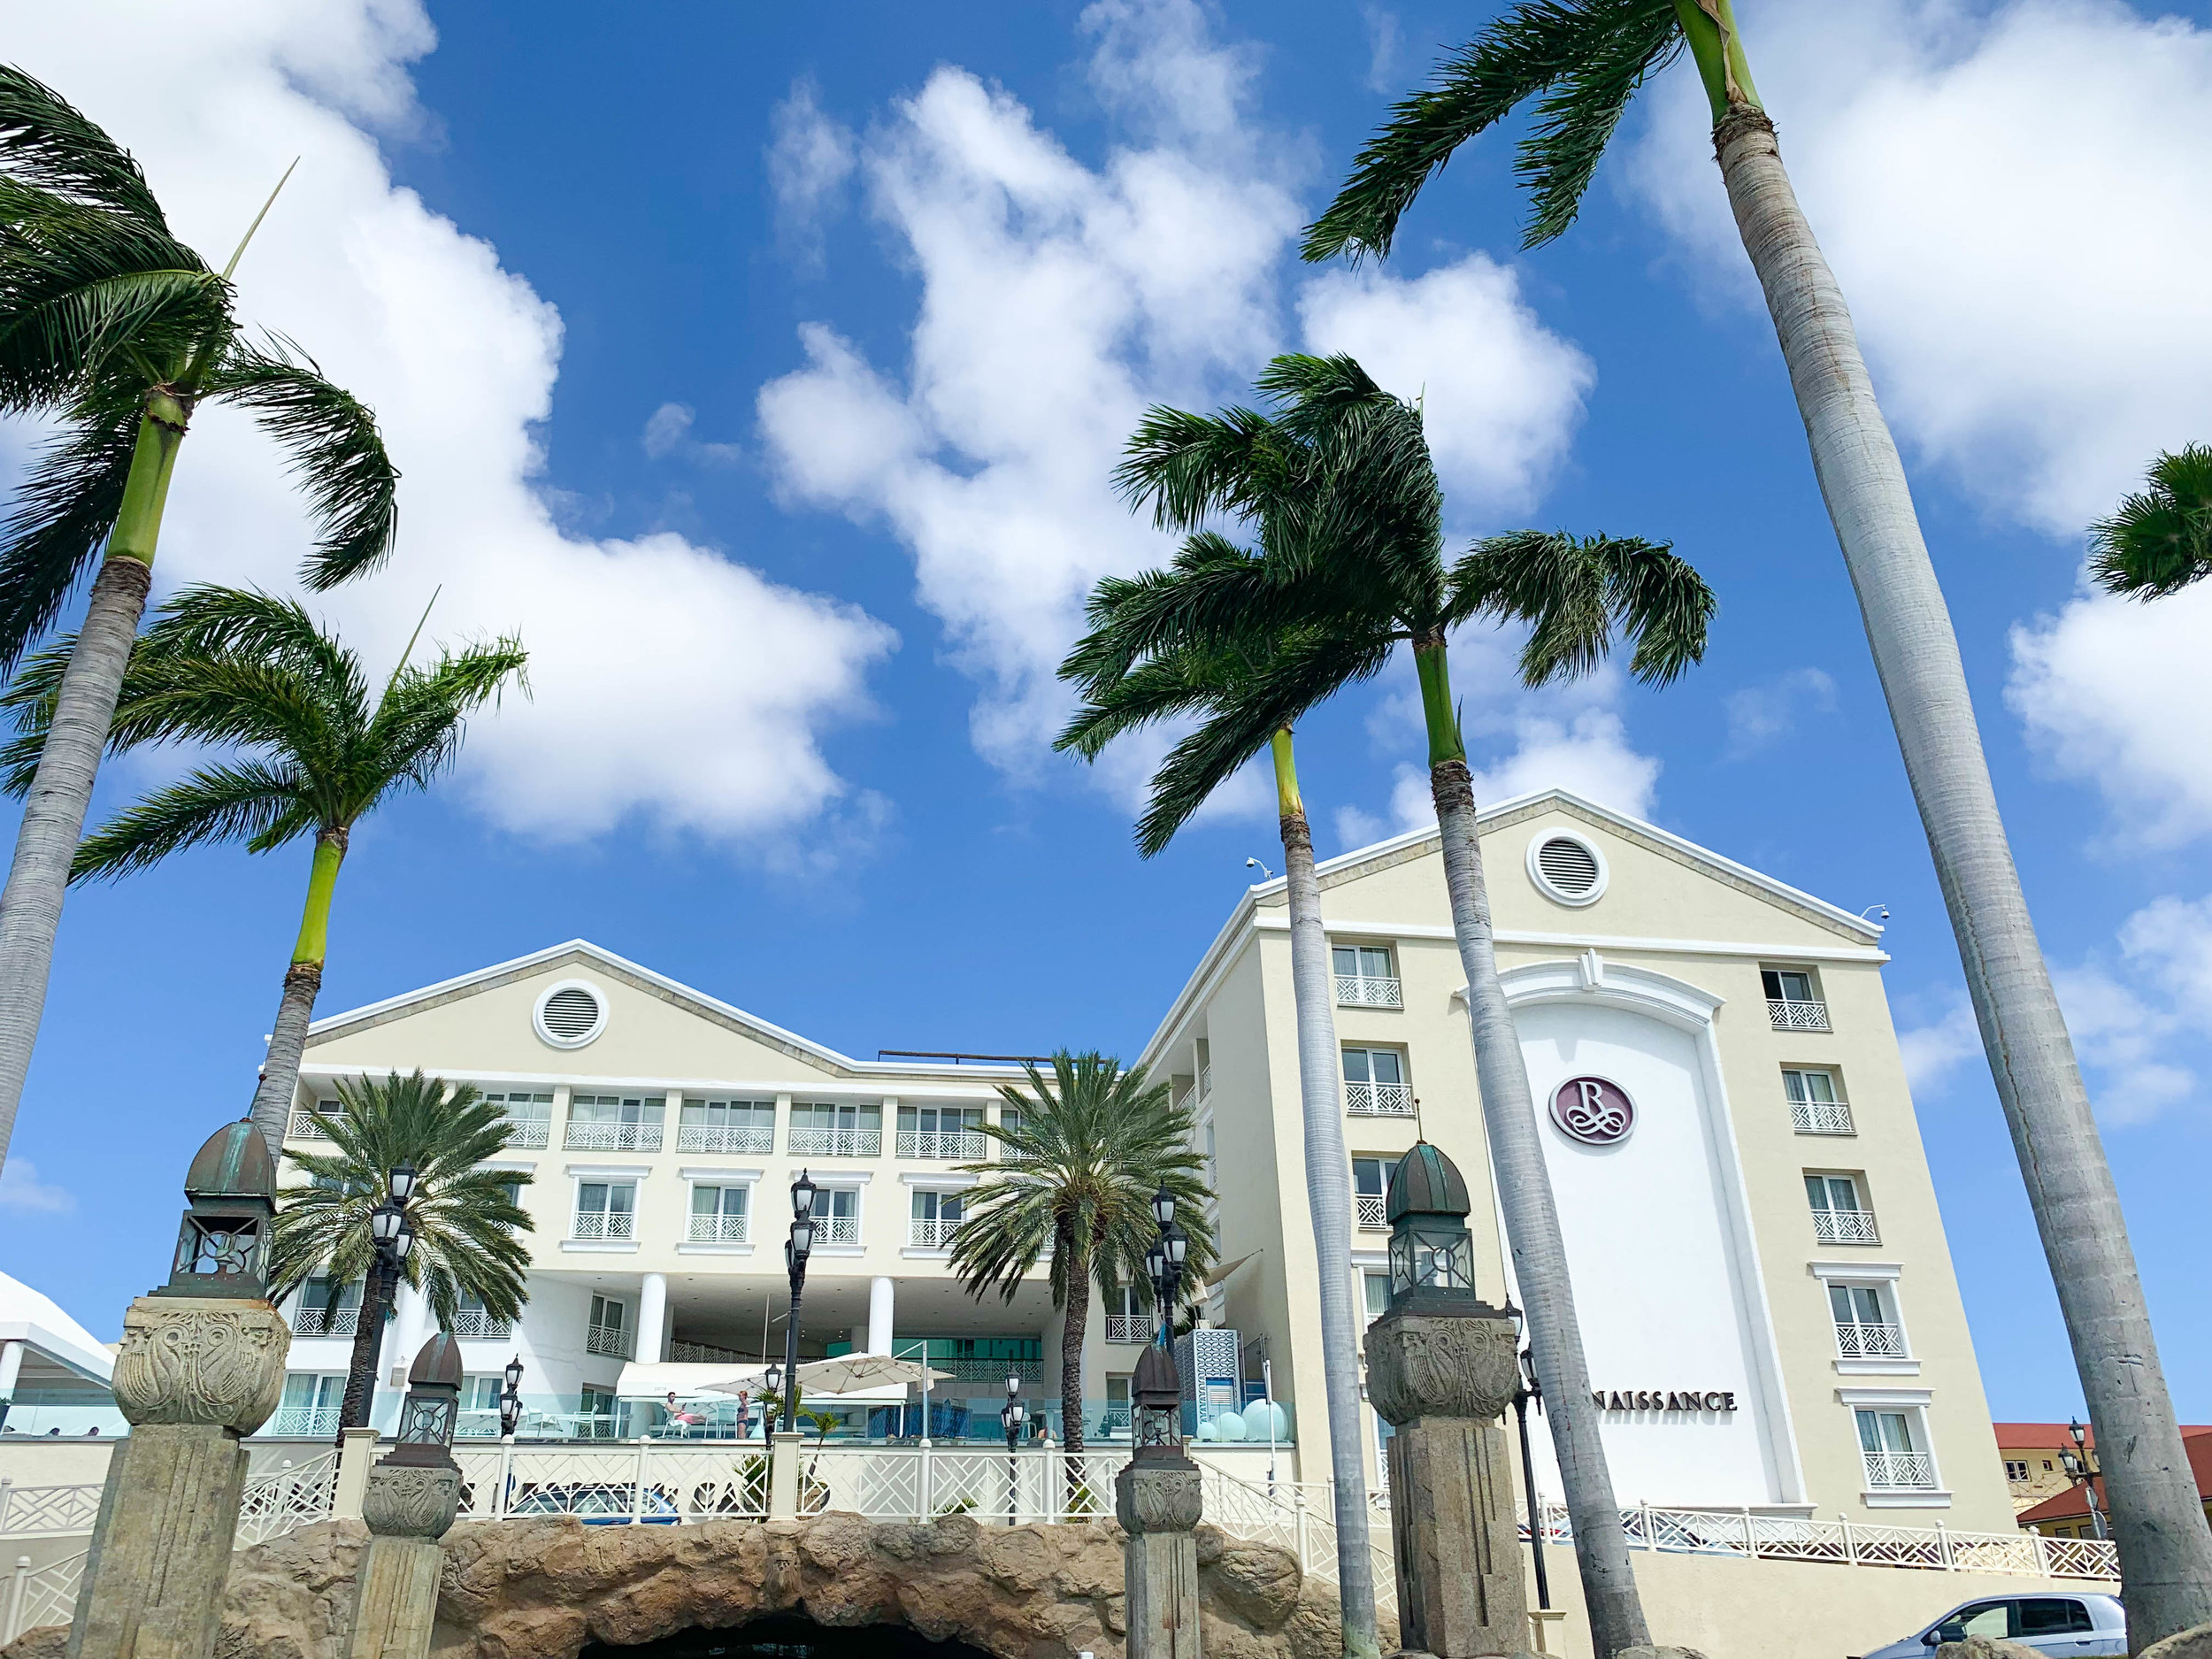 Aruba Adults Only Hotel and Casino